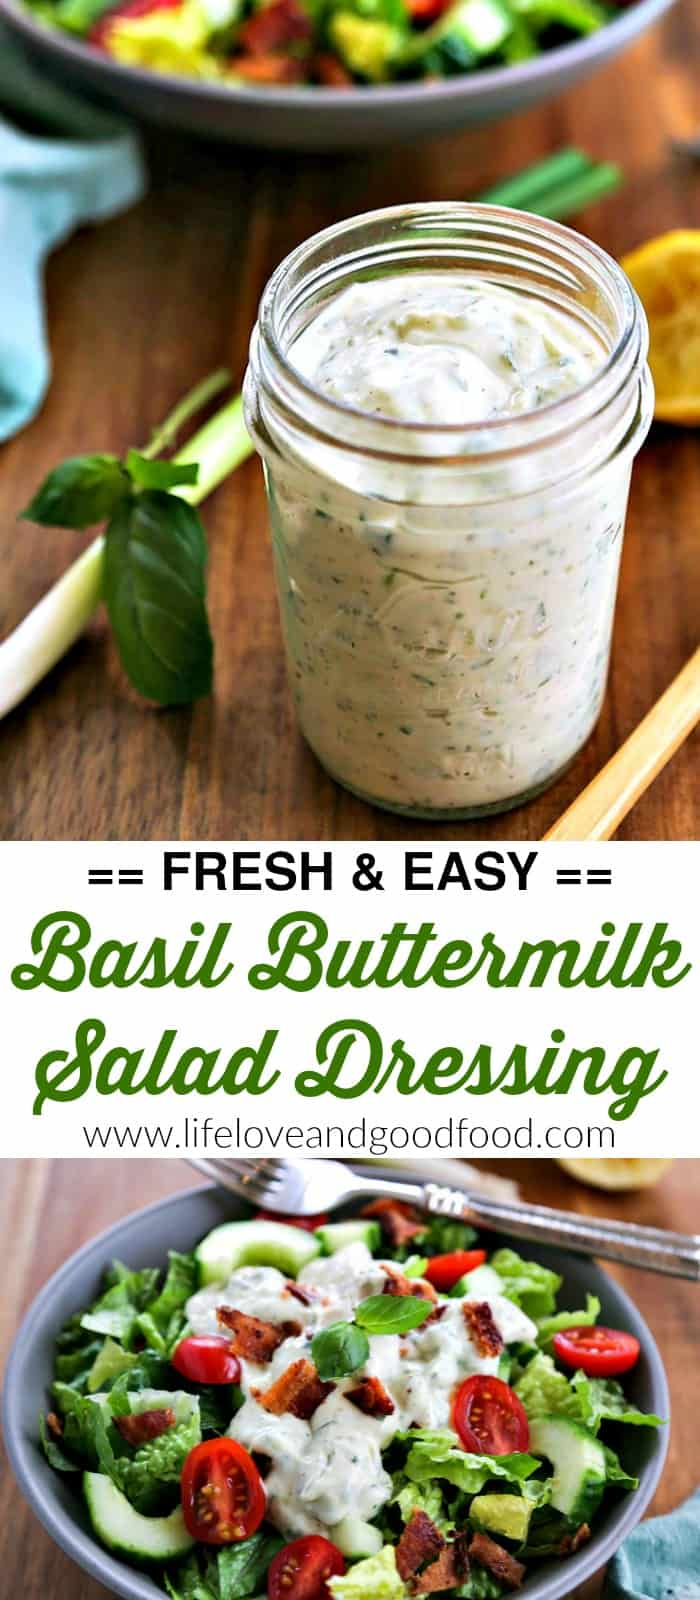 Basil Buttermilk Dressing. Welcome Spring with fresh salads topped with a delicious homemade dressing blended up with fresh herbs, garlic, and tangy buttermilk. #buttermilkdressing #saladdressing